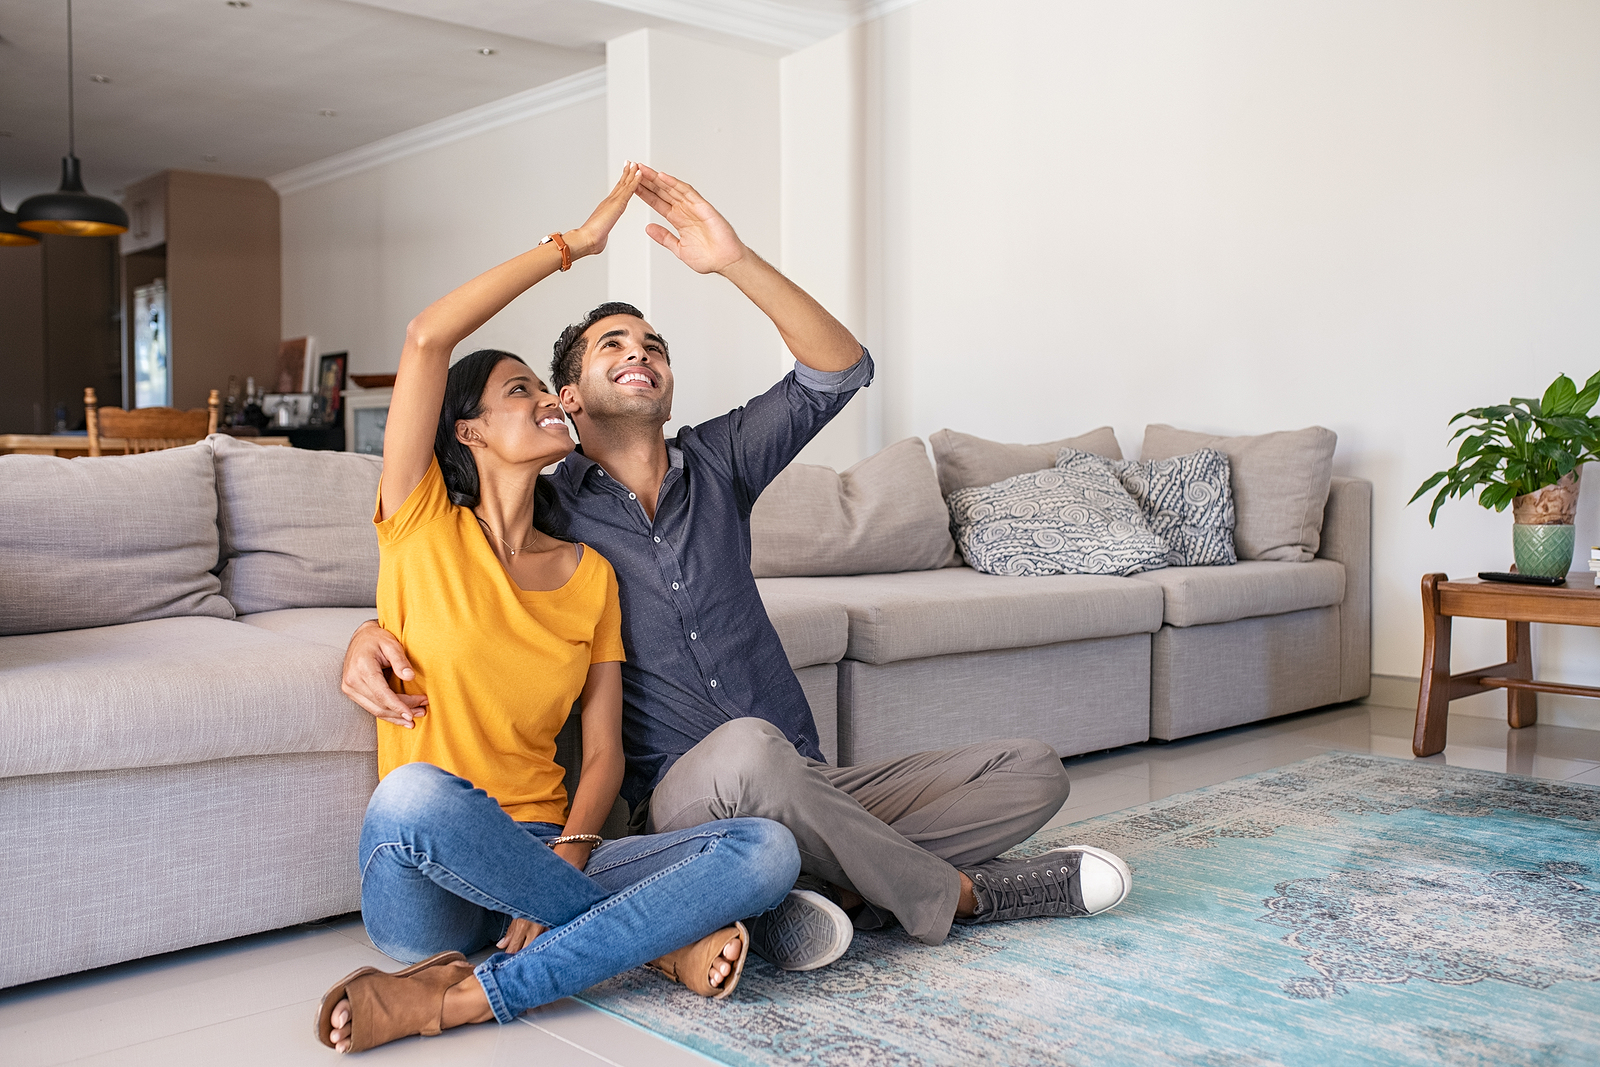 So, You Wanna Be a Landlord